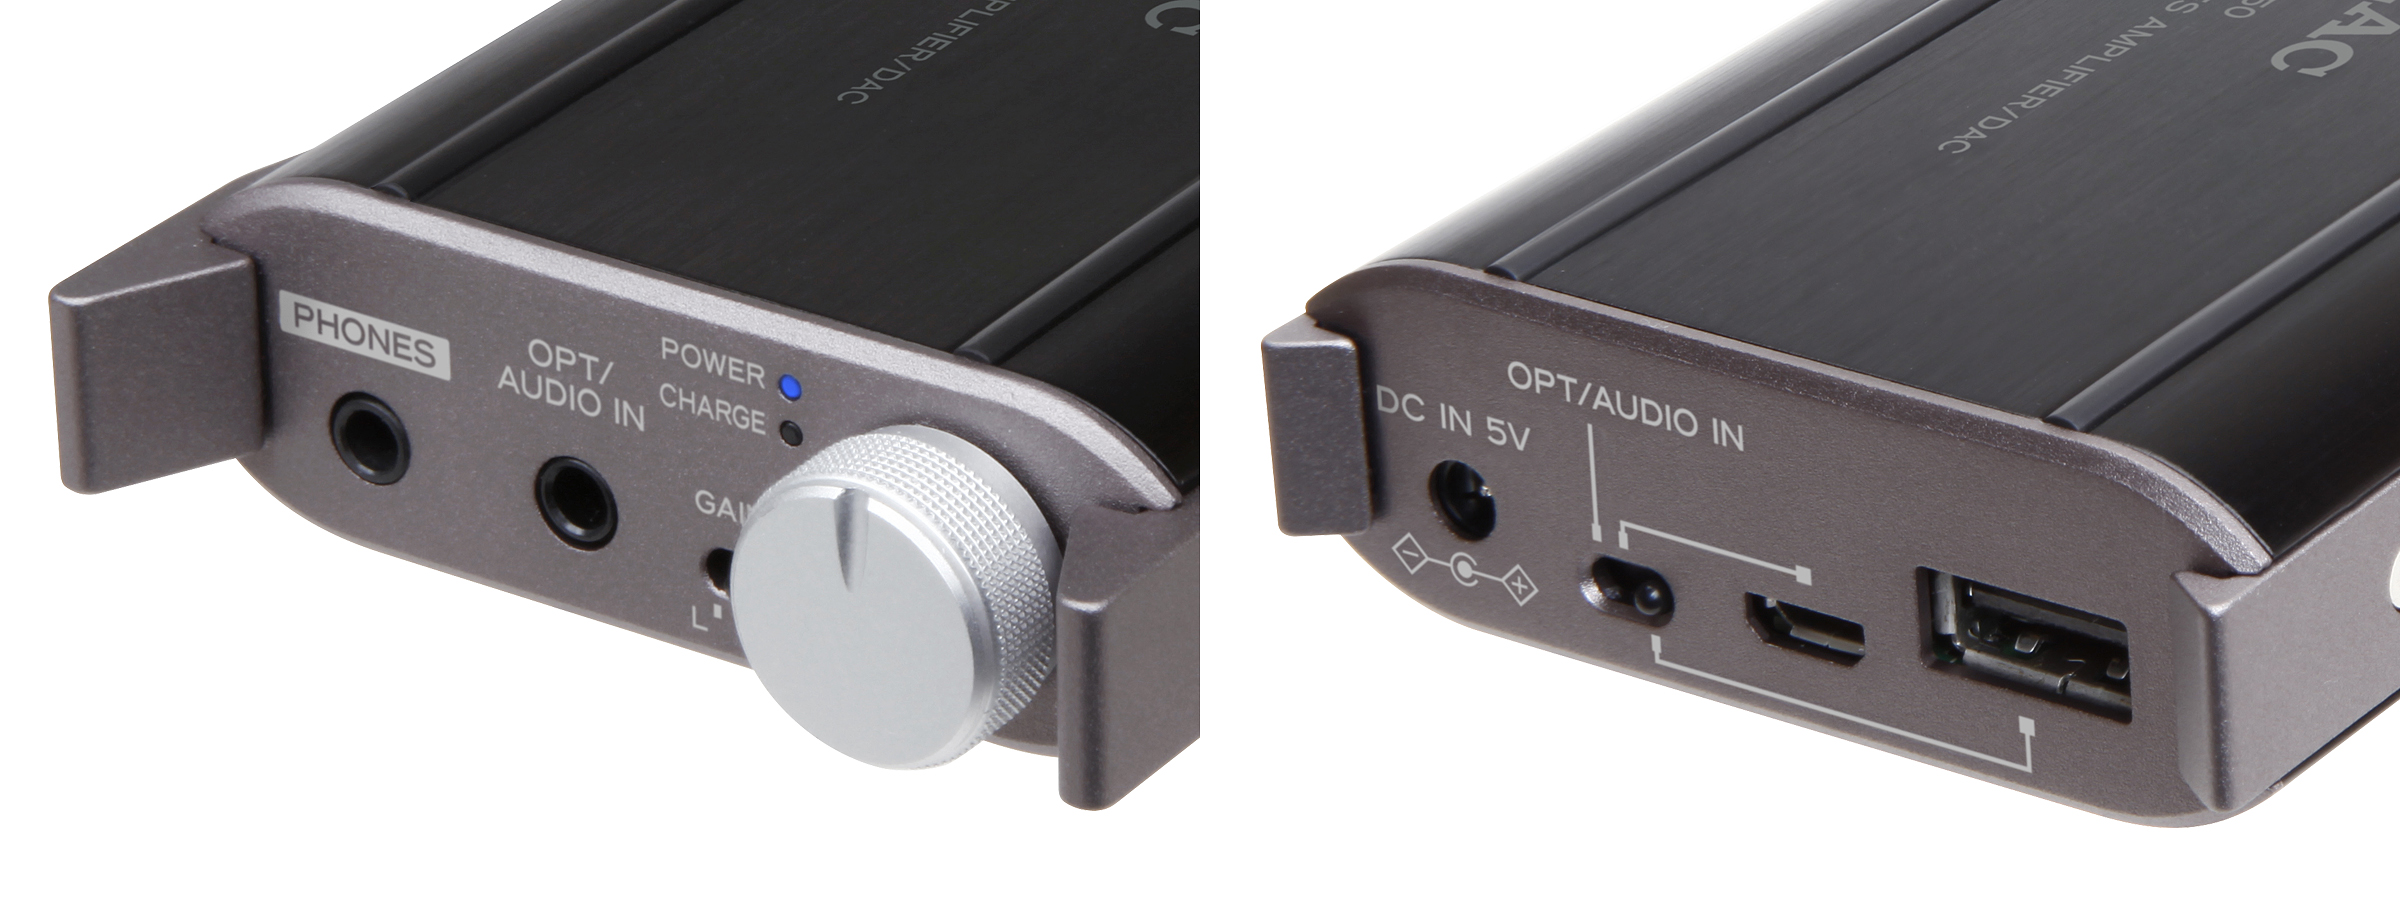 TEAC HA-P50 Portable Headphone Amplifier With USB DAC (Sold Out) Ha-p50_w_body